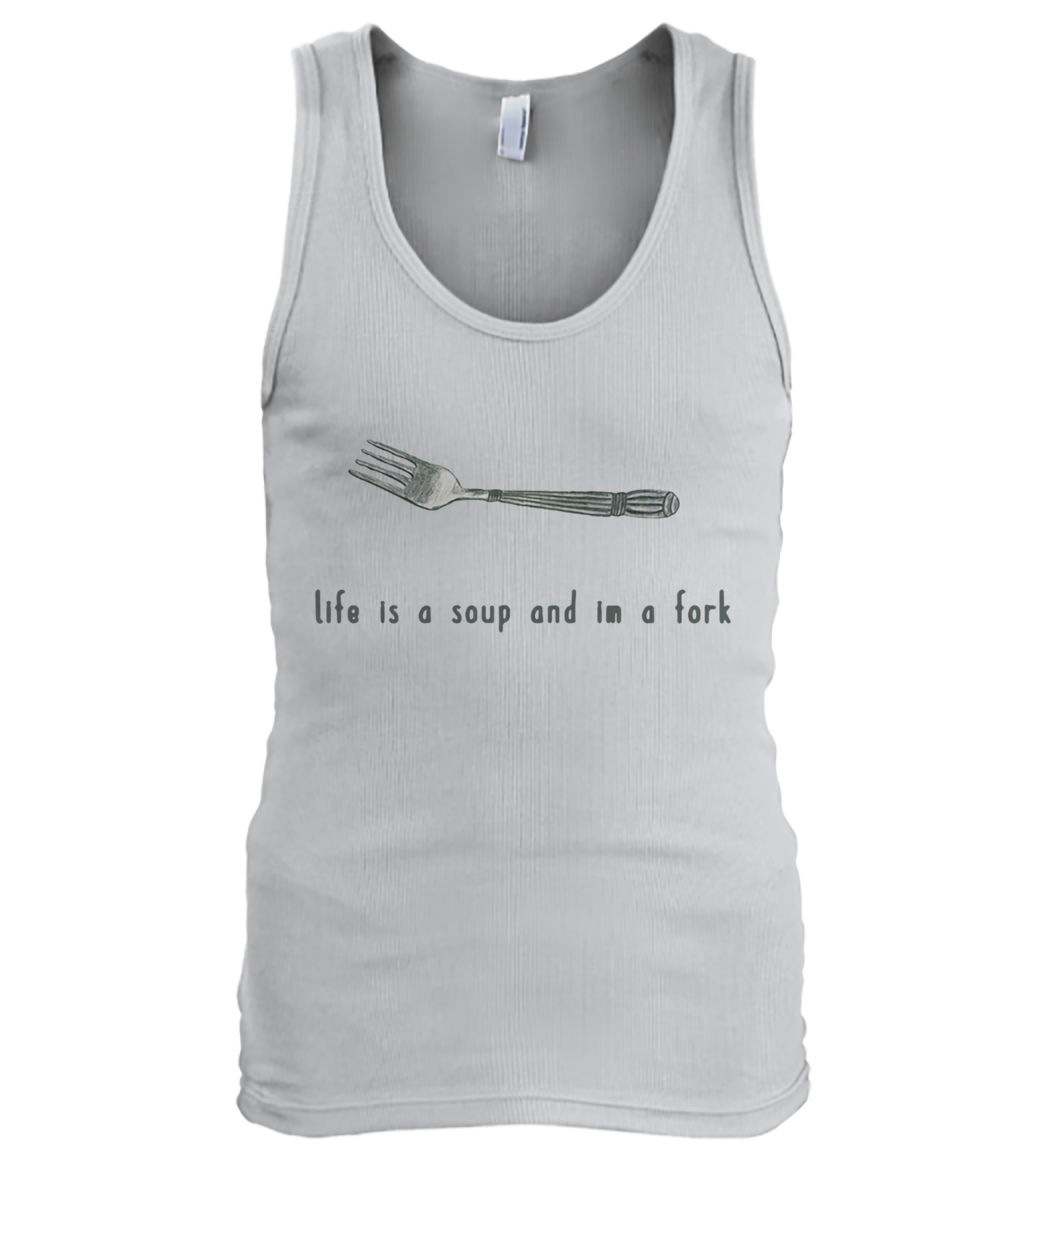 Life is a soup and I'm a fork men's tank top